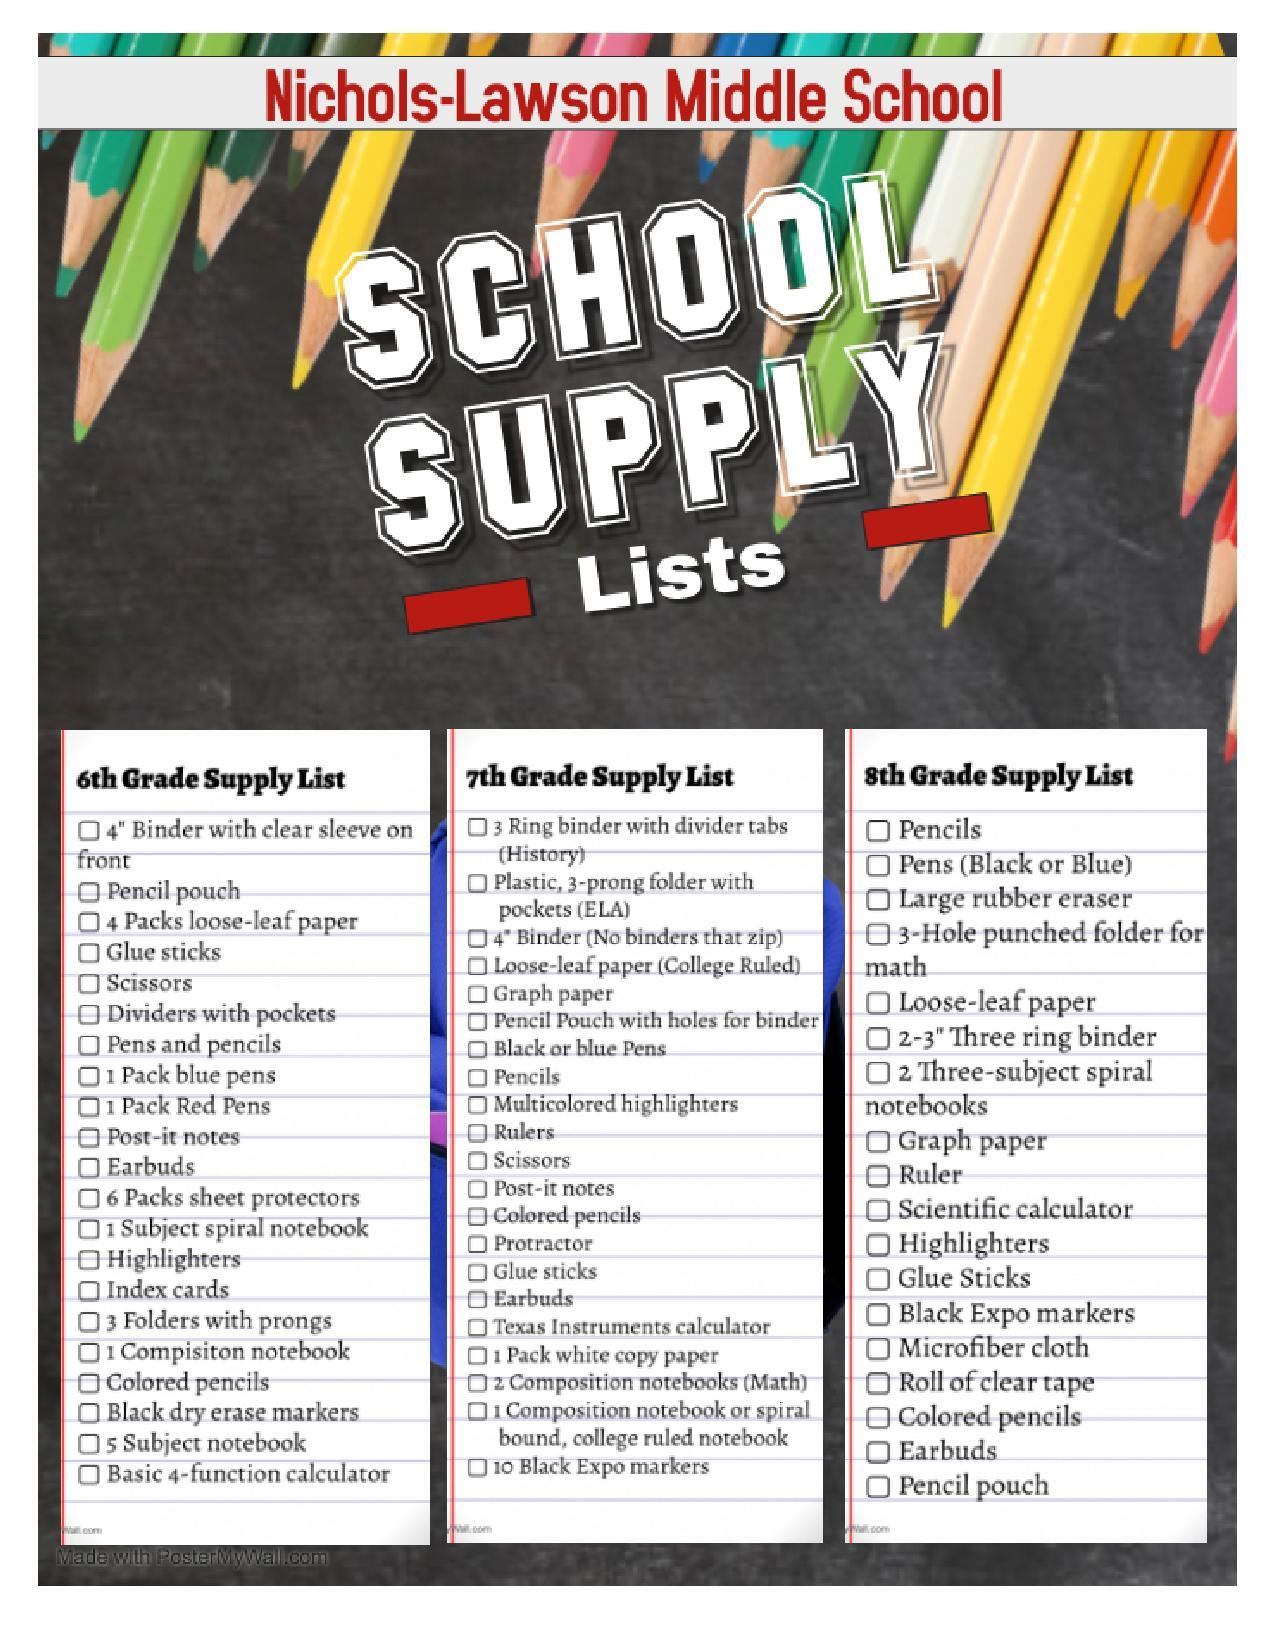 2020/2021 School Supply Lists